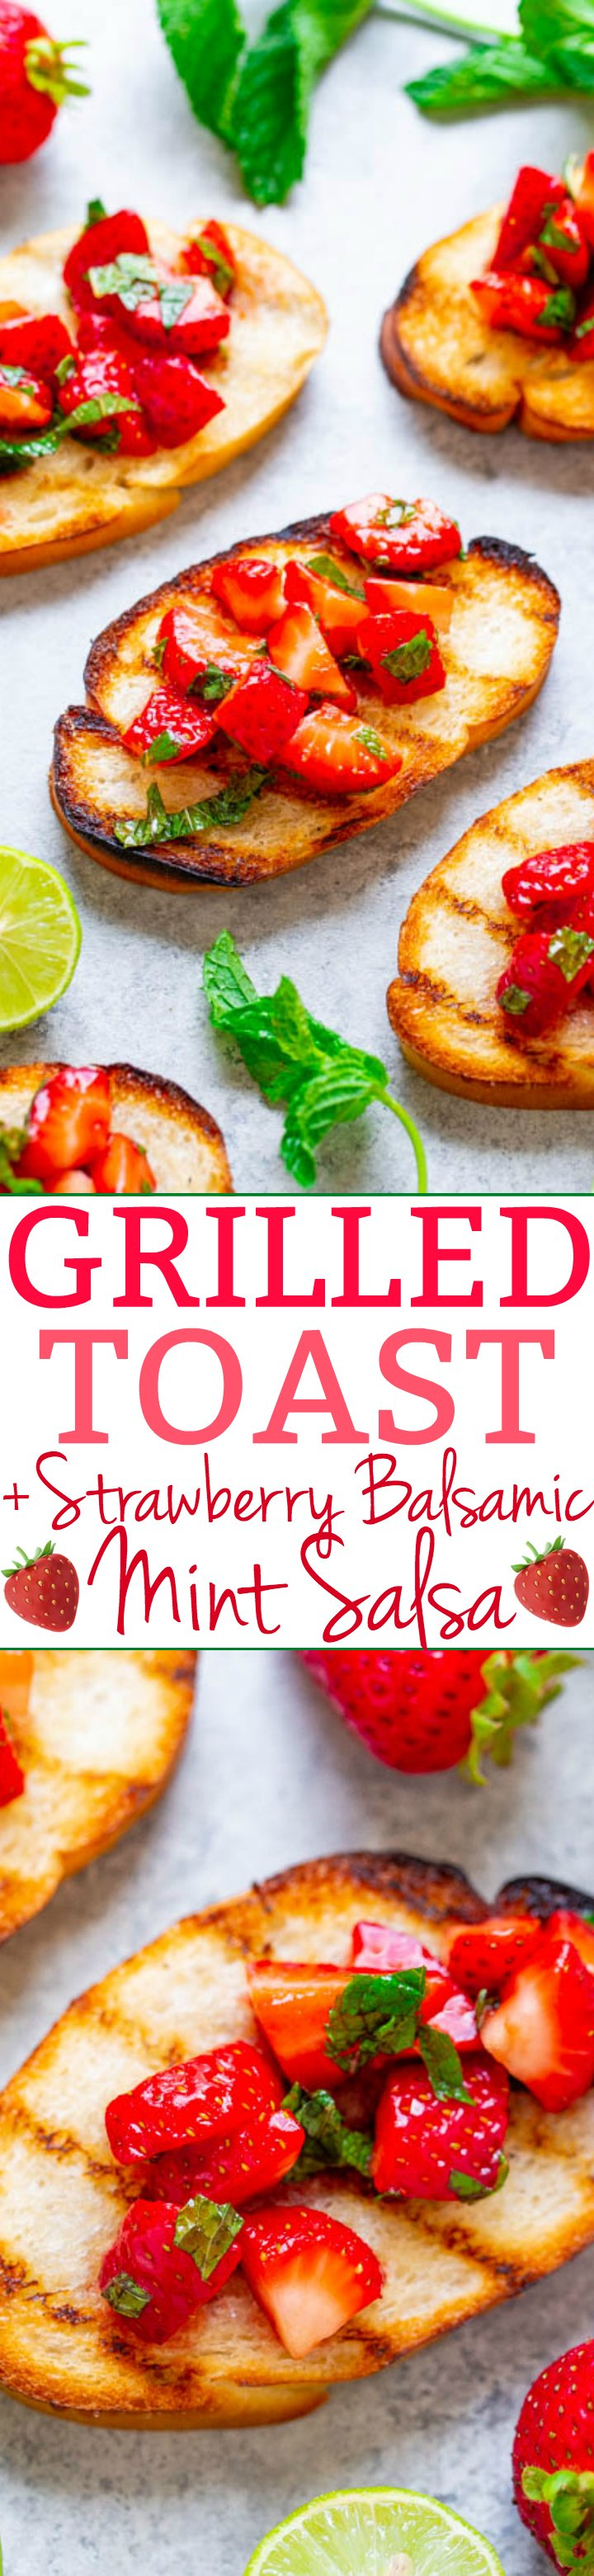 Grilled Toast with Strawberry Balsamic Mint Salsa - Impress your friends and family with these fun, FAST and EASY grilled toasts!! The salsa has so much FLAVOR from the strawberries, mint, lime, juice, and balsamic vinegar!!